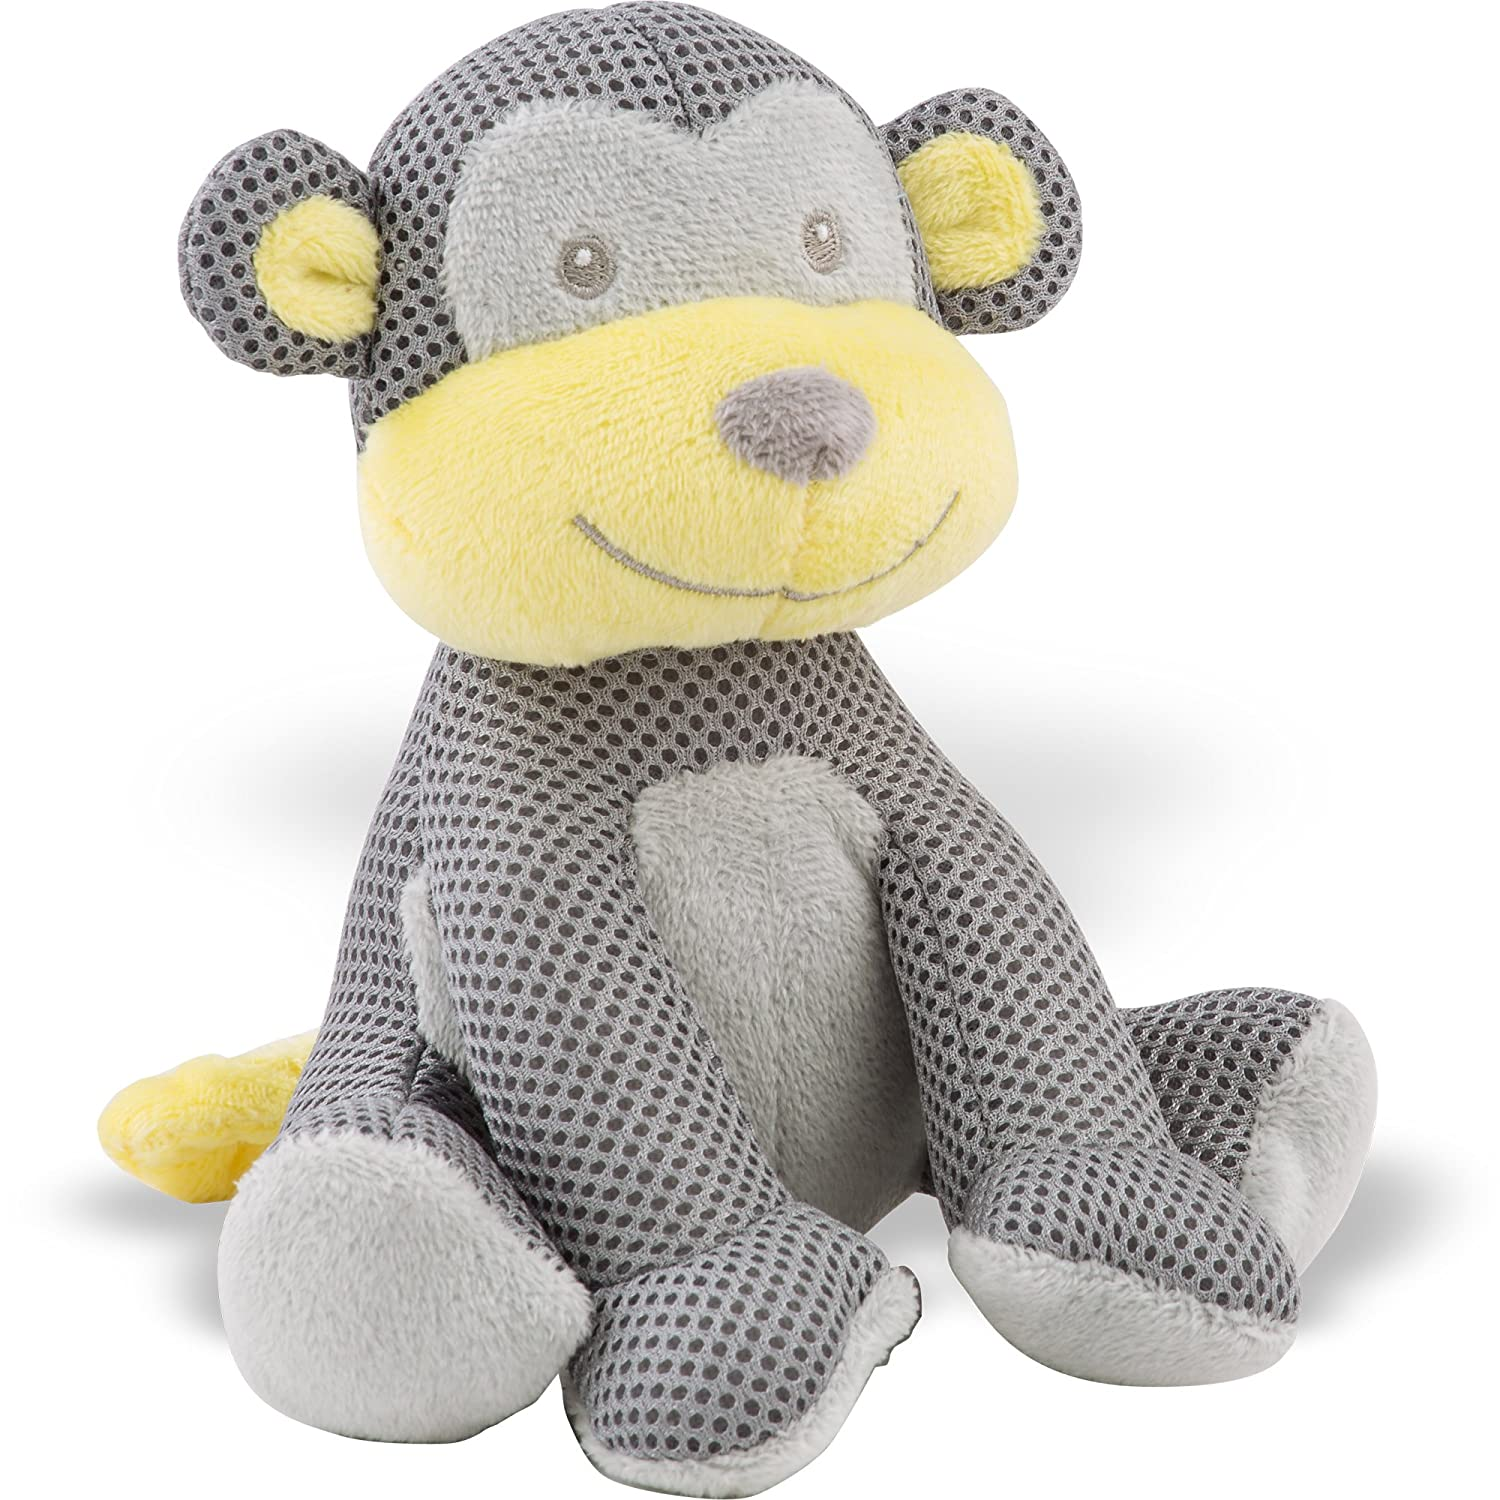 BreathableBaby Breathables Soft Toy Monkey Amazon Baby